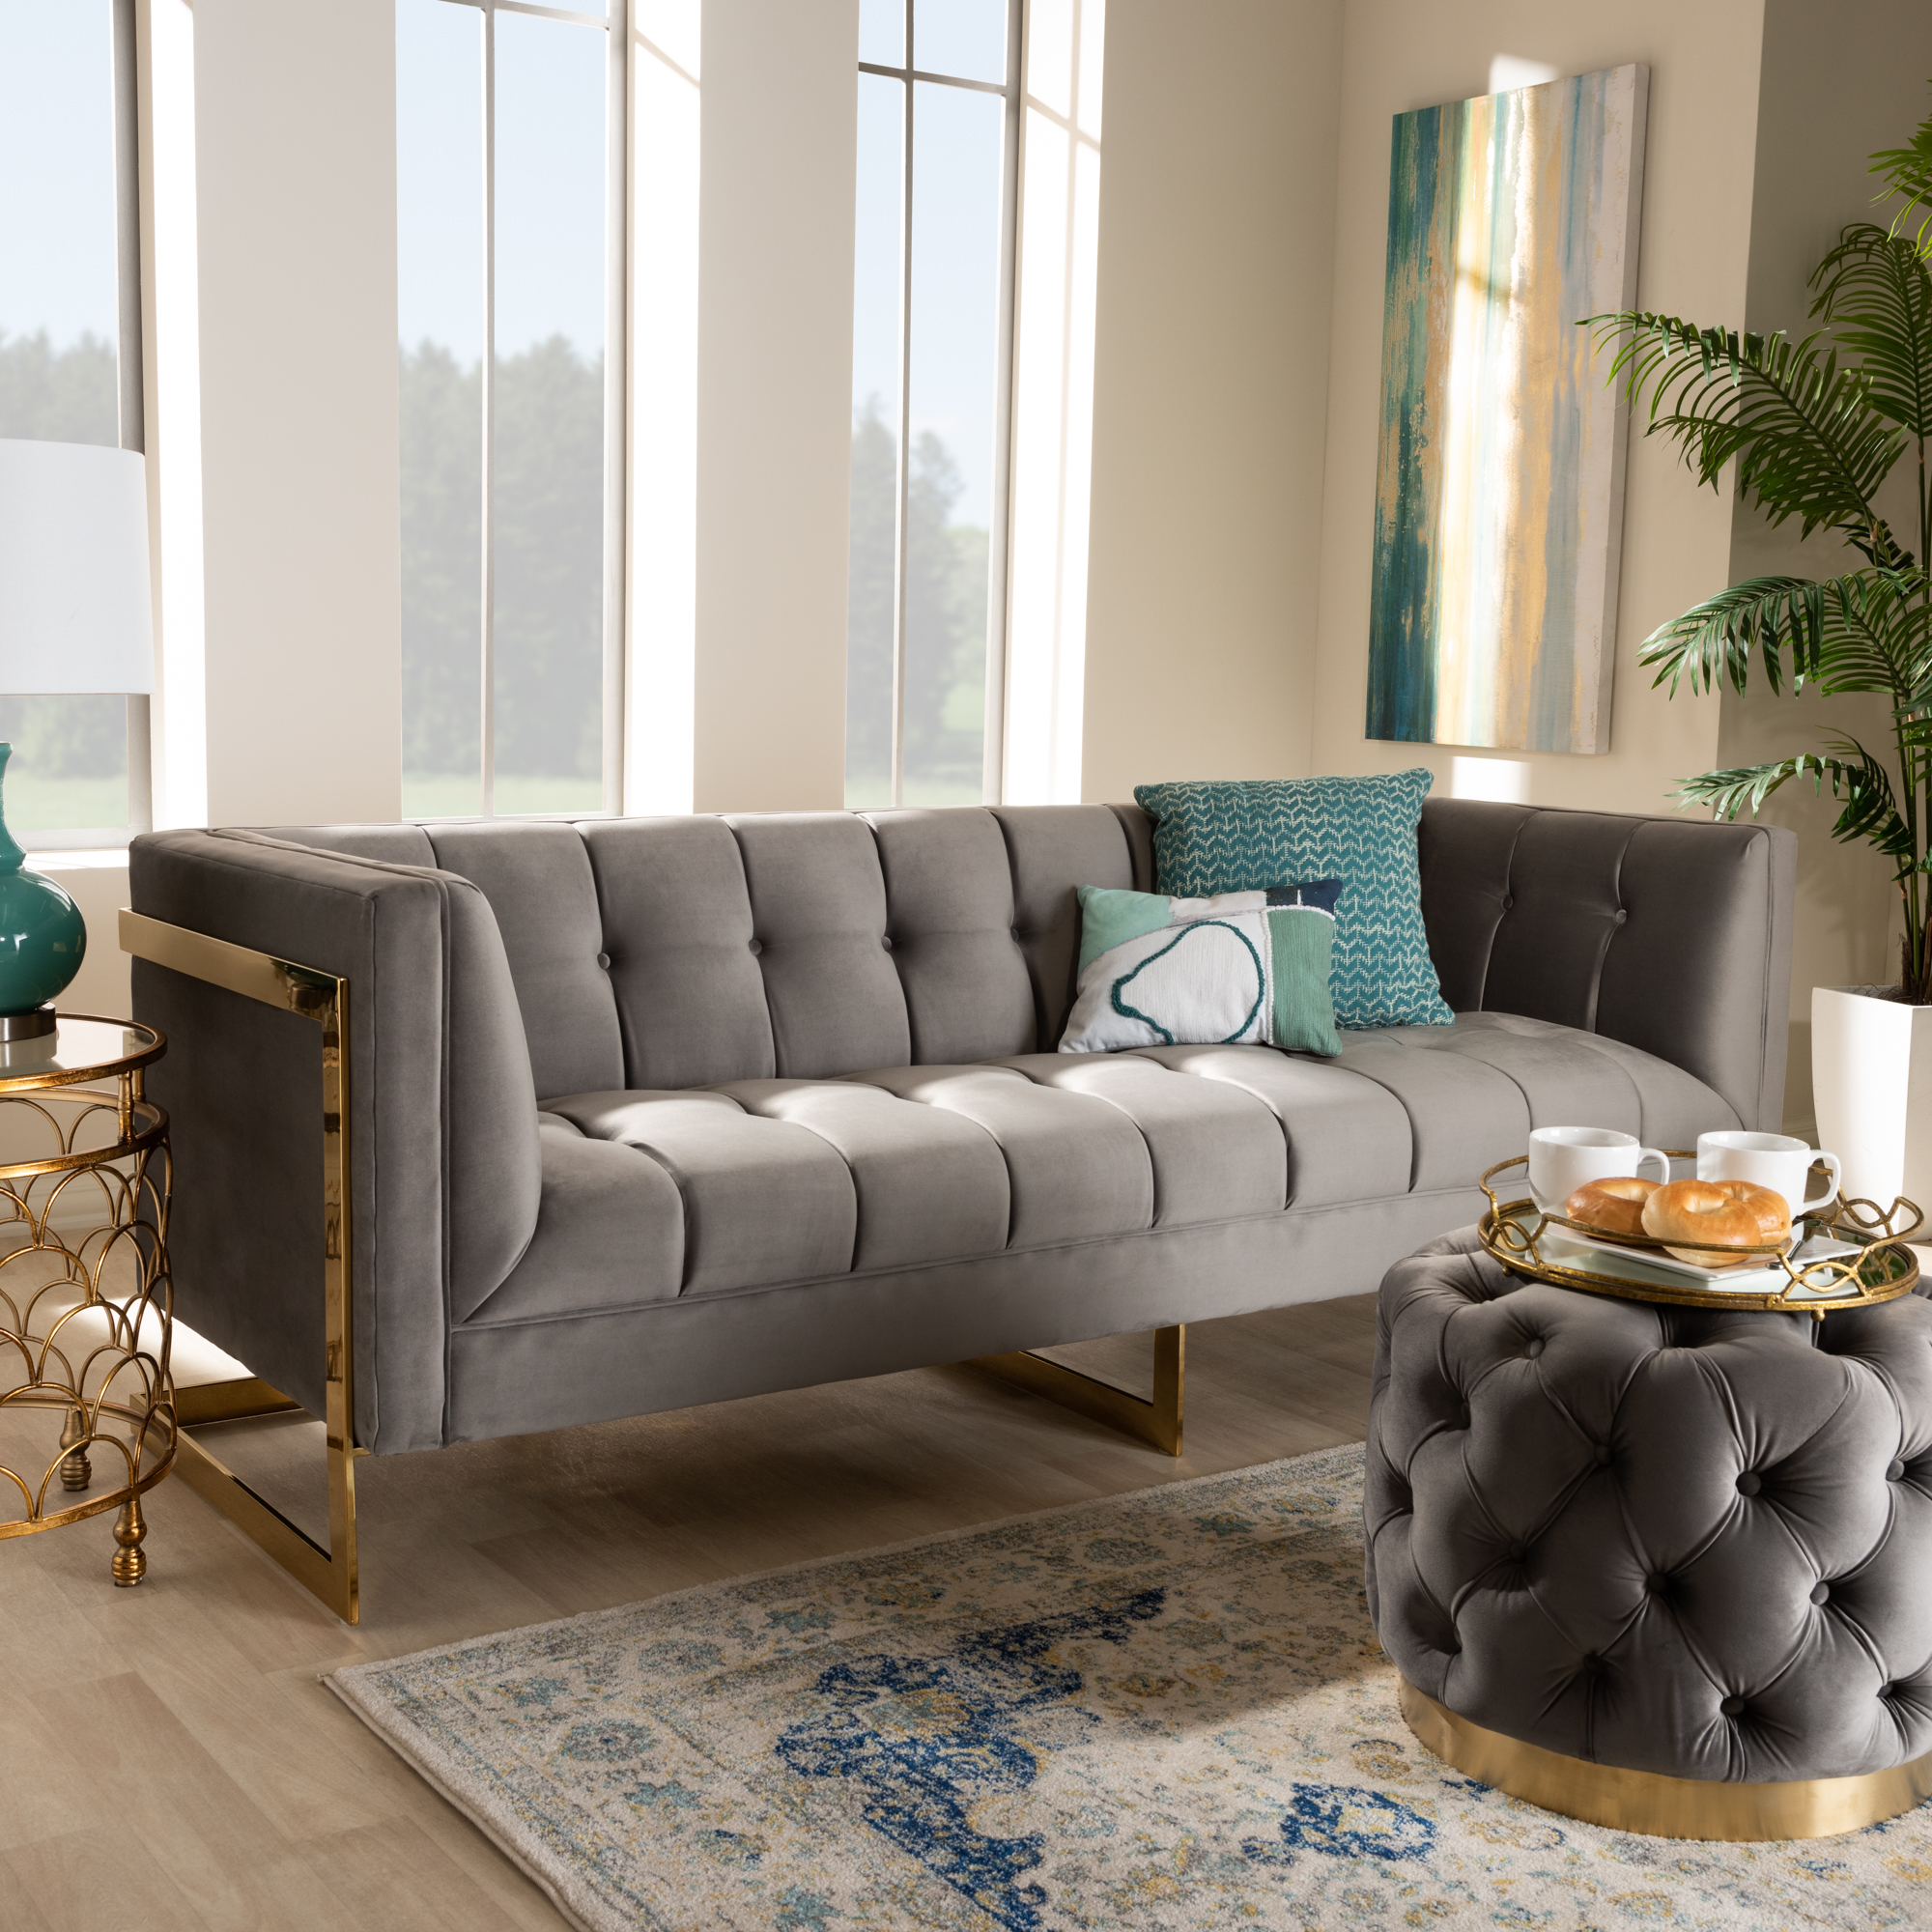 Picture of: Baxton Studio Ambra Glam And Luxe Grey Velvet Fabric Upholstered And Button Tufted Sofa With Gold Tone Frame Walmart Com Walmart Com